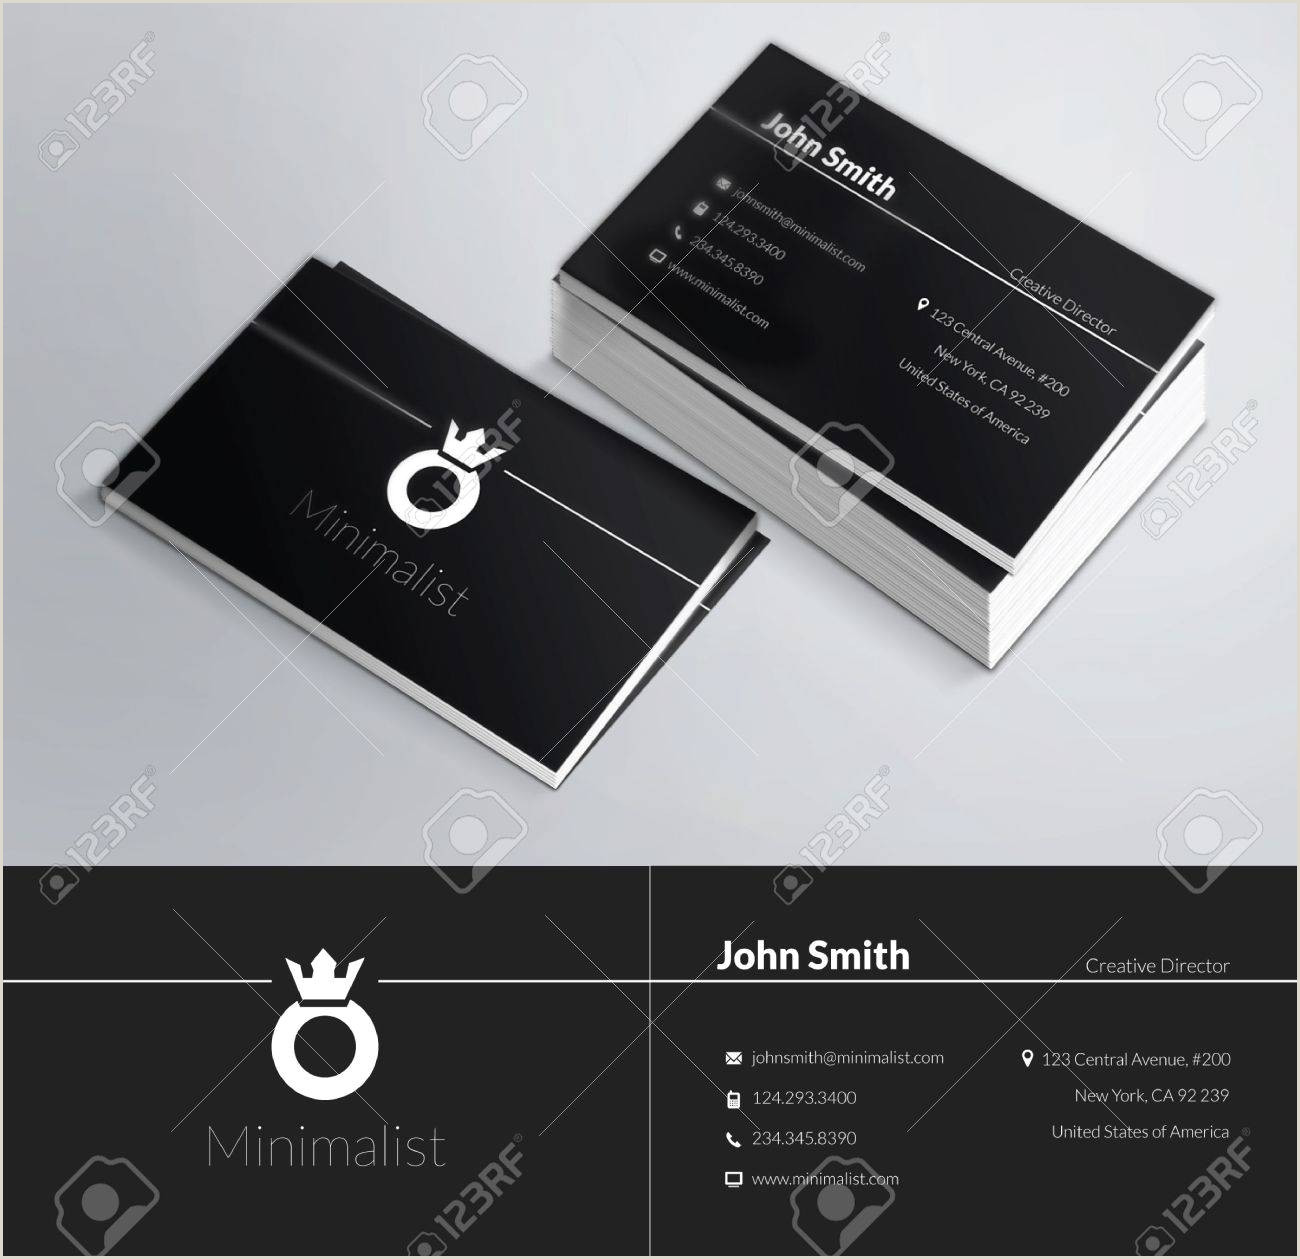 Business Cards' This Is A Modern Clean And Elegant 2 Sided Business Card Perfect